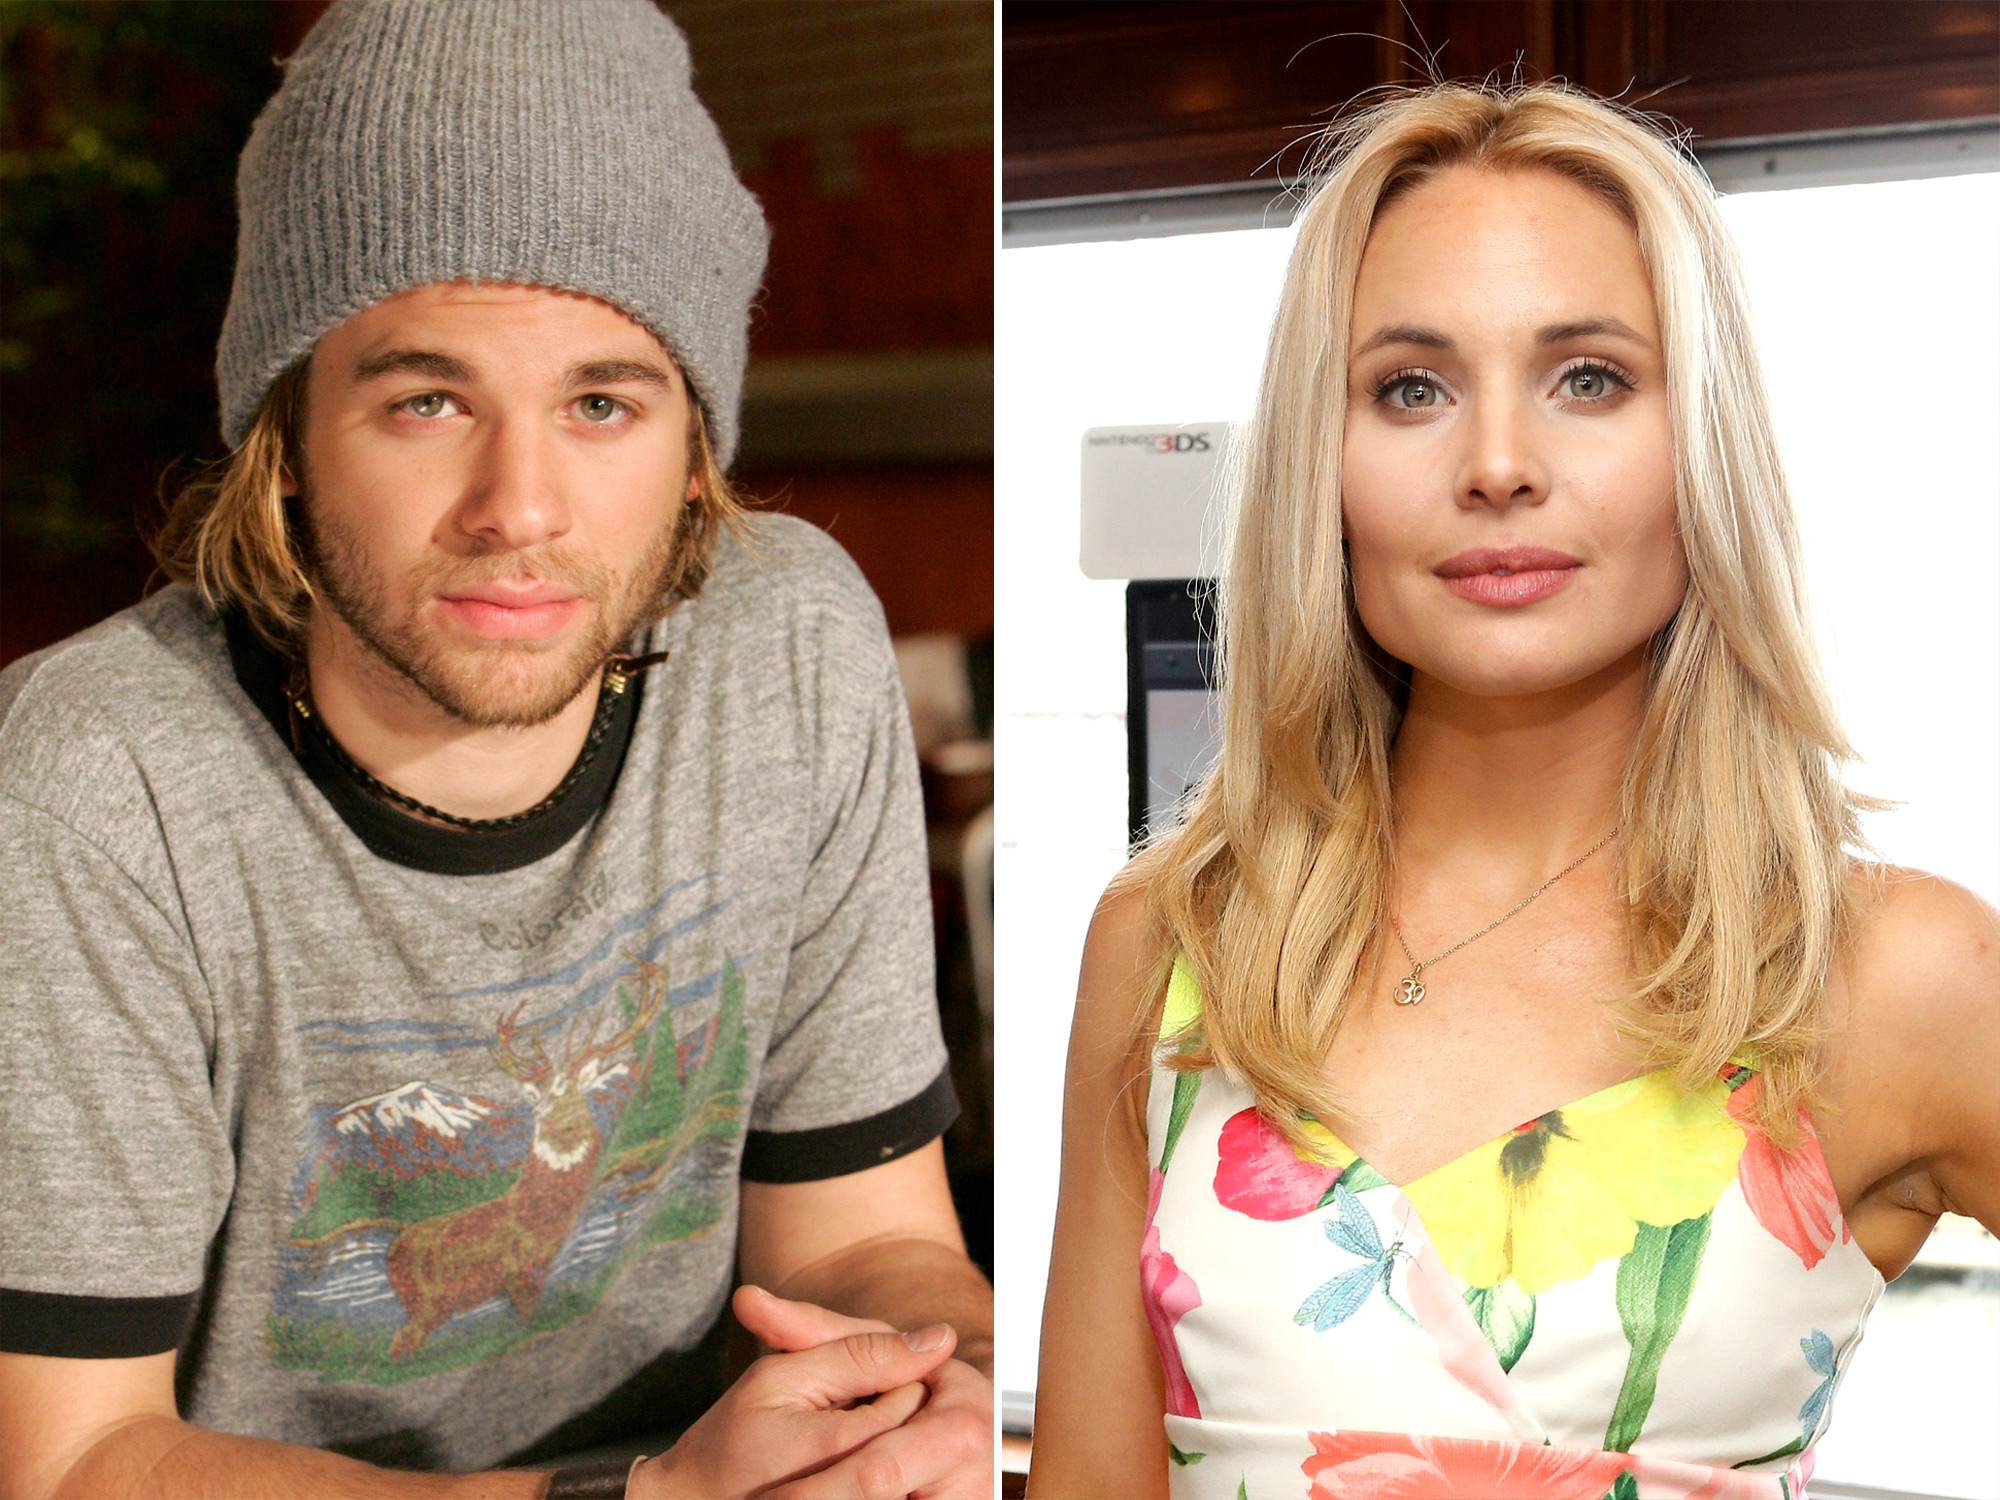 A.J. Trauth and Leah Pipes